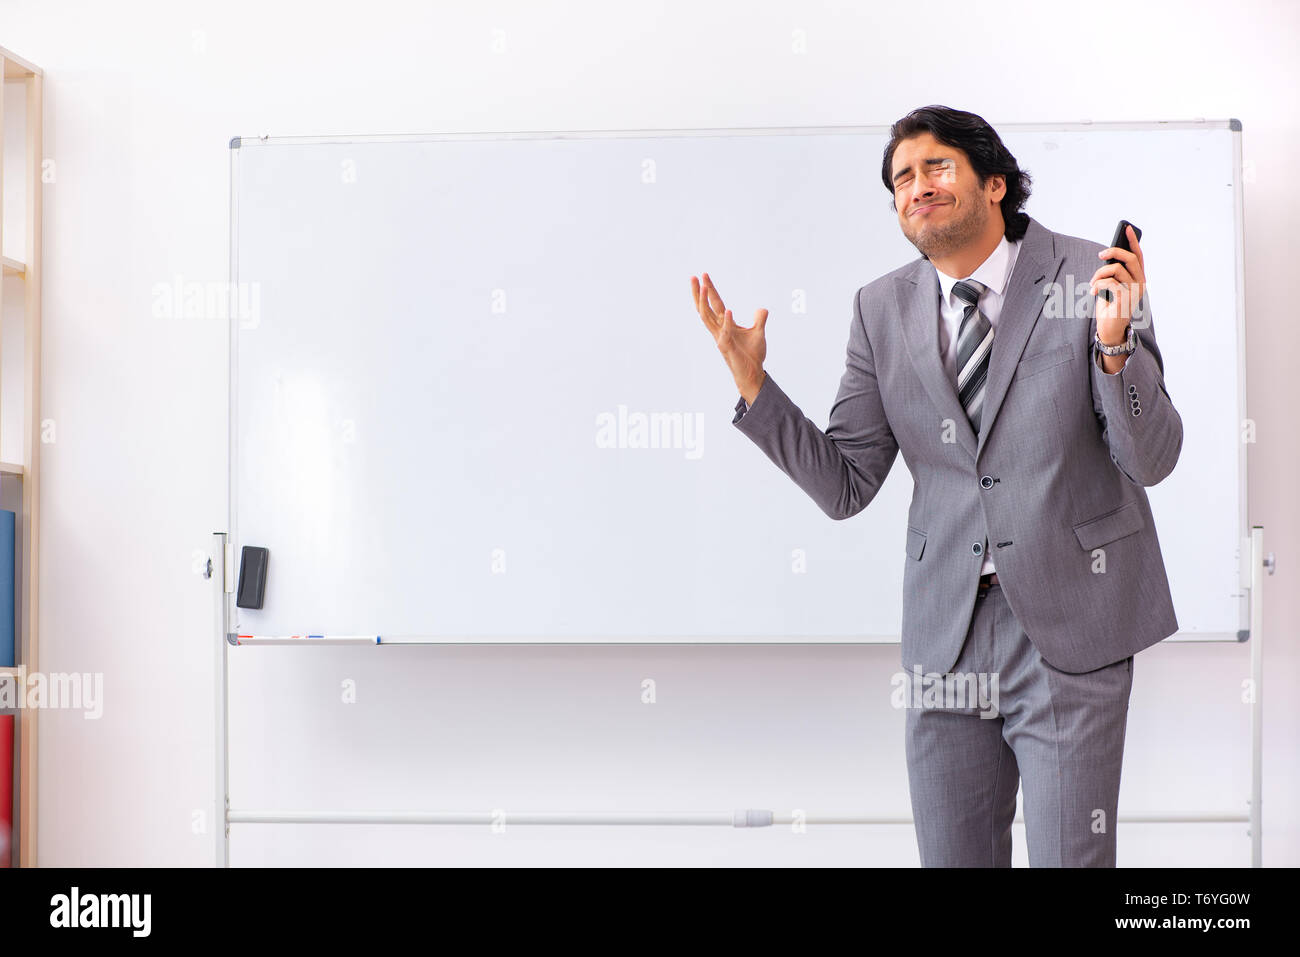 Young handsome businessman standing in front of whiteboard - Stock Image